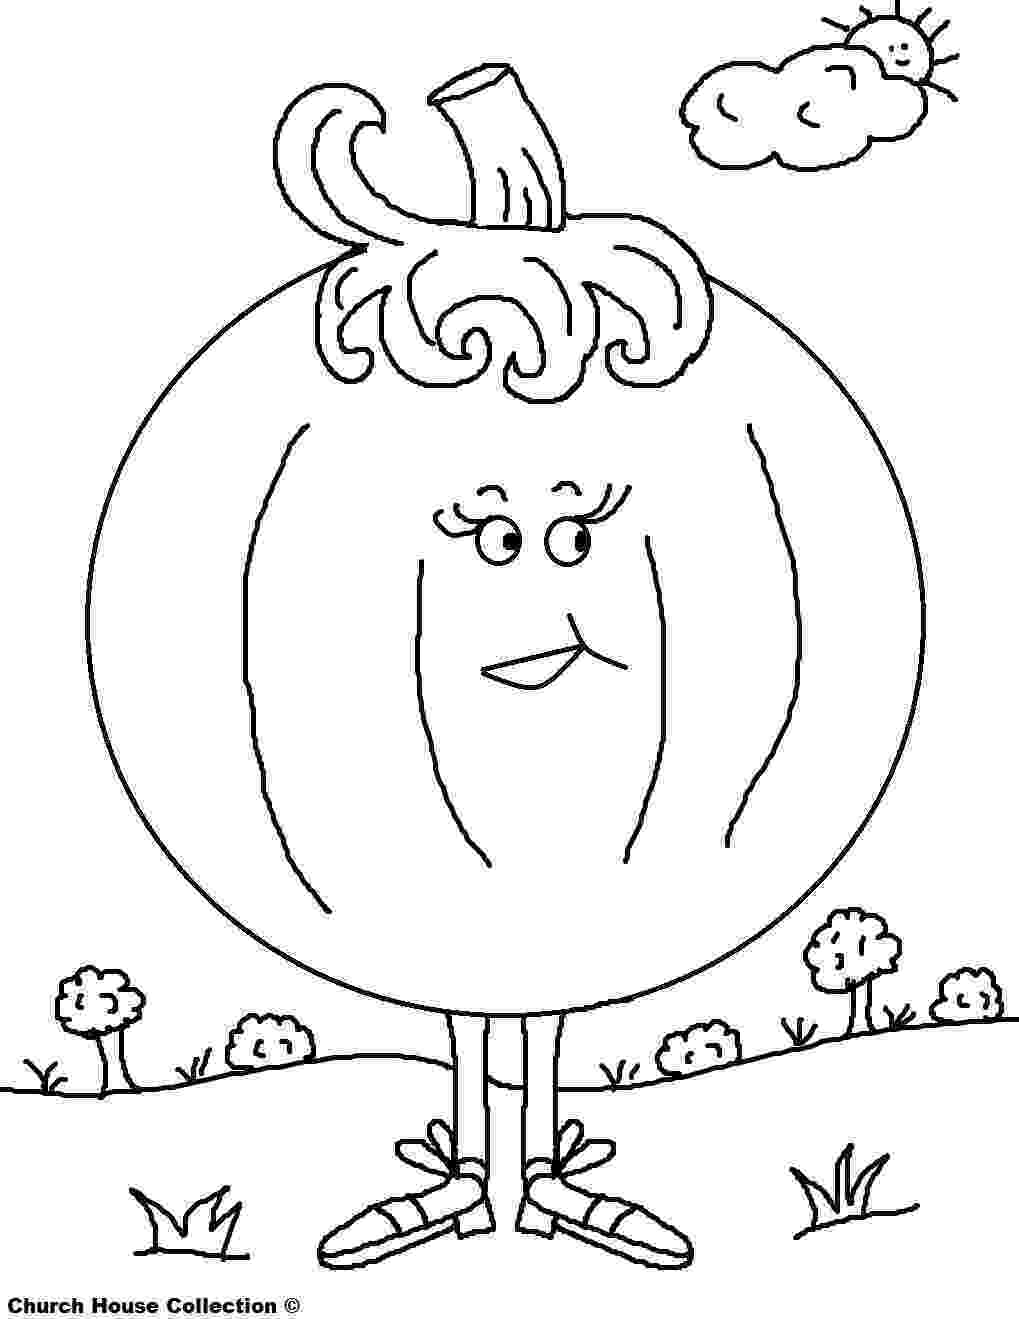 coloring pages for toddlers sunday school sunday school coloring pages for kids gtgt disney coloring pages coloring pages for school toddlers sunday